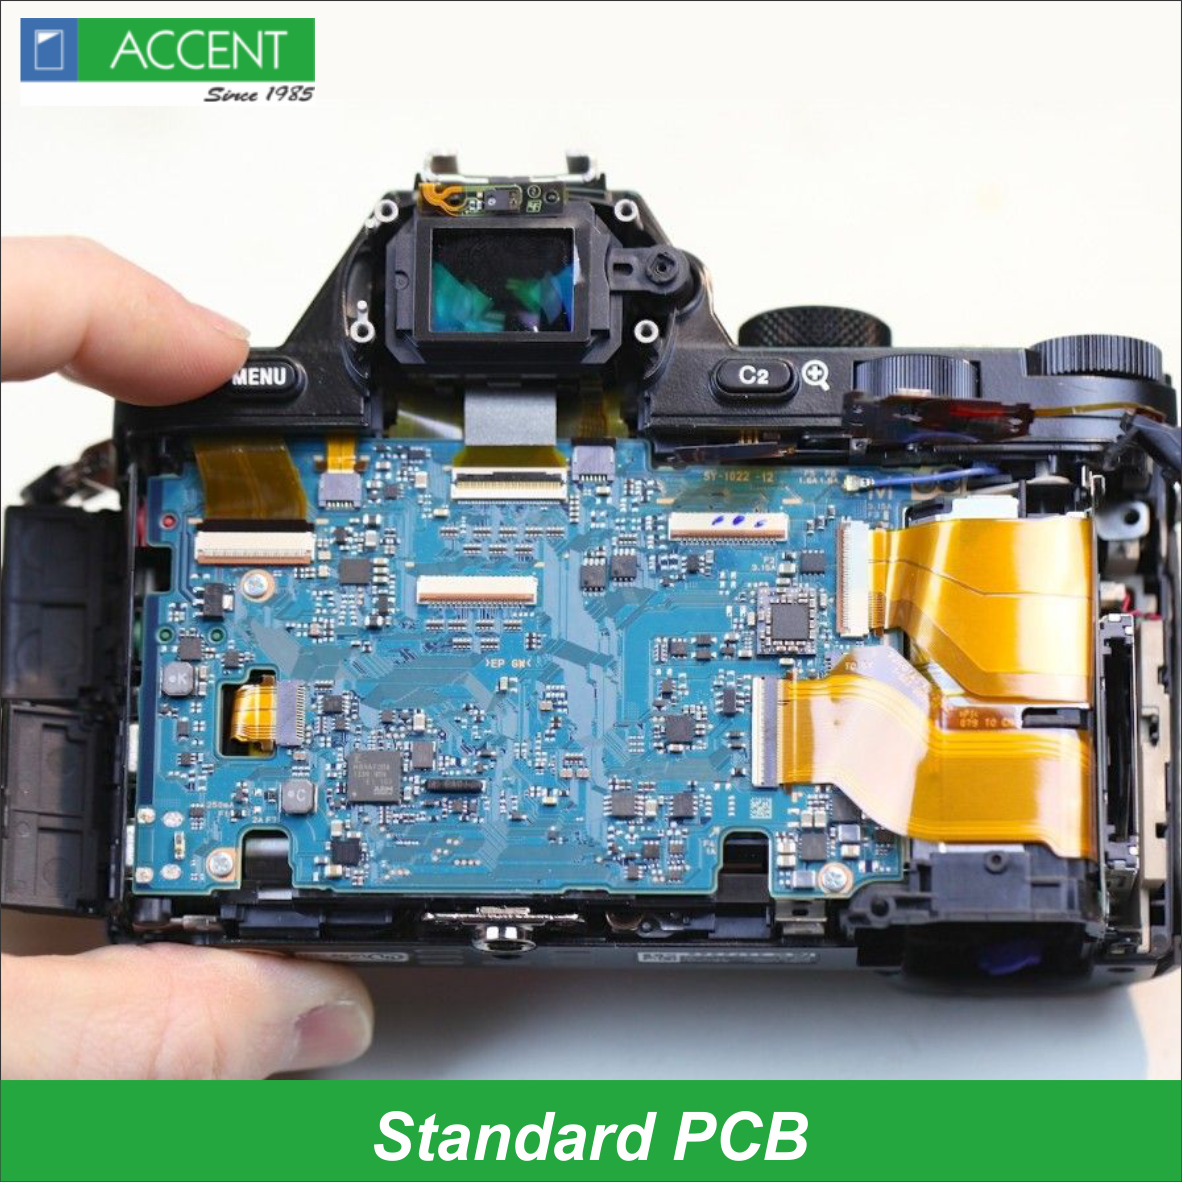 Accent Fixtures Offers Standard Pcb Or Printed Circuit Boards That Led Lighting Board Parts Buy Support Electrical Connection For And Electronic Devices